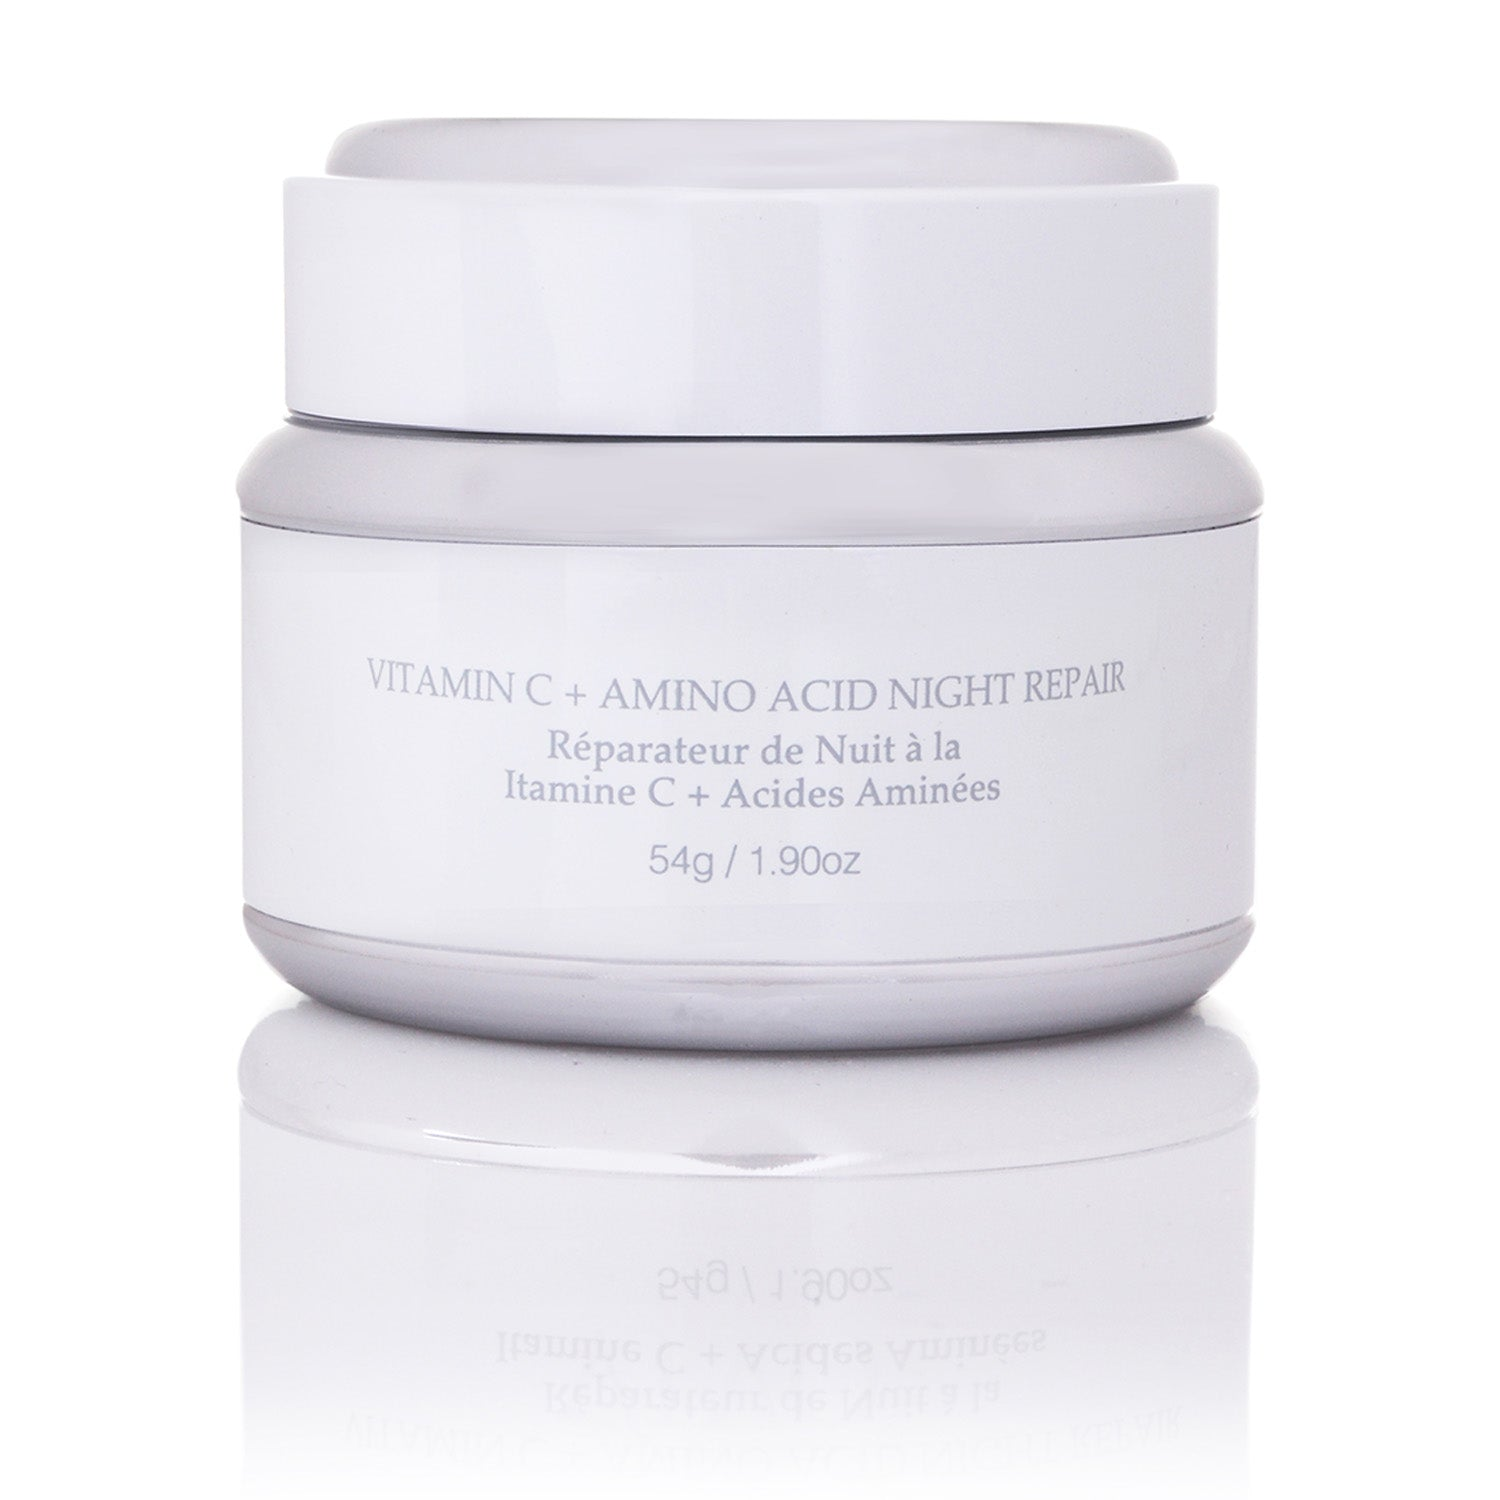 Vivo Per Lei Night Repair Moisturizer